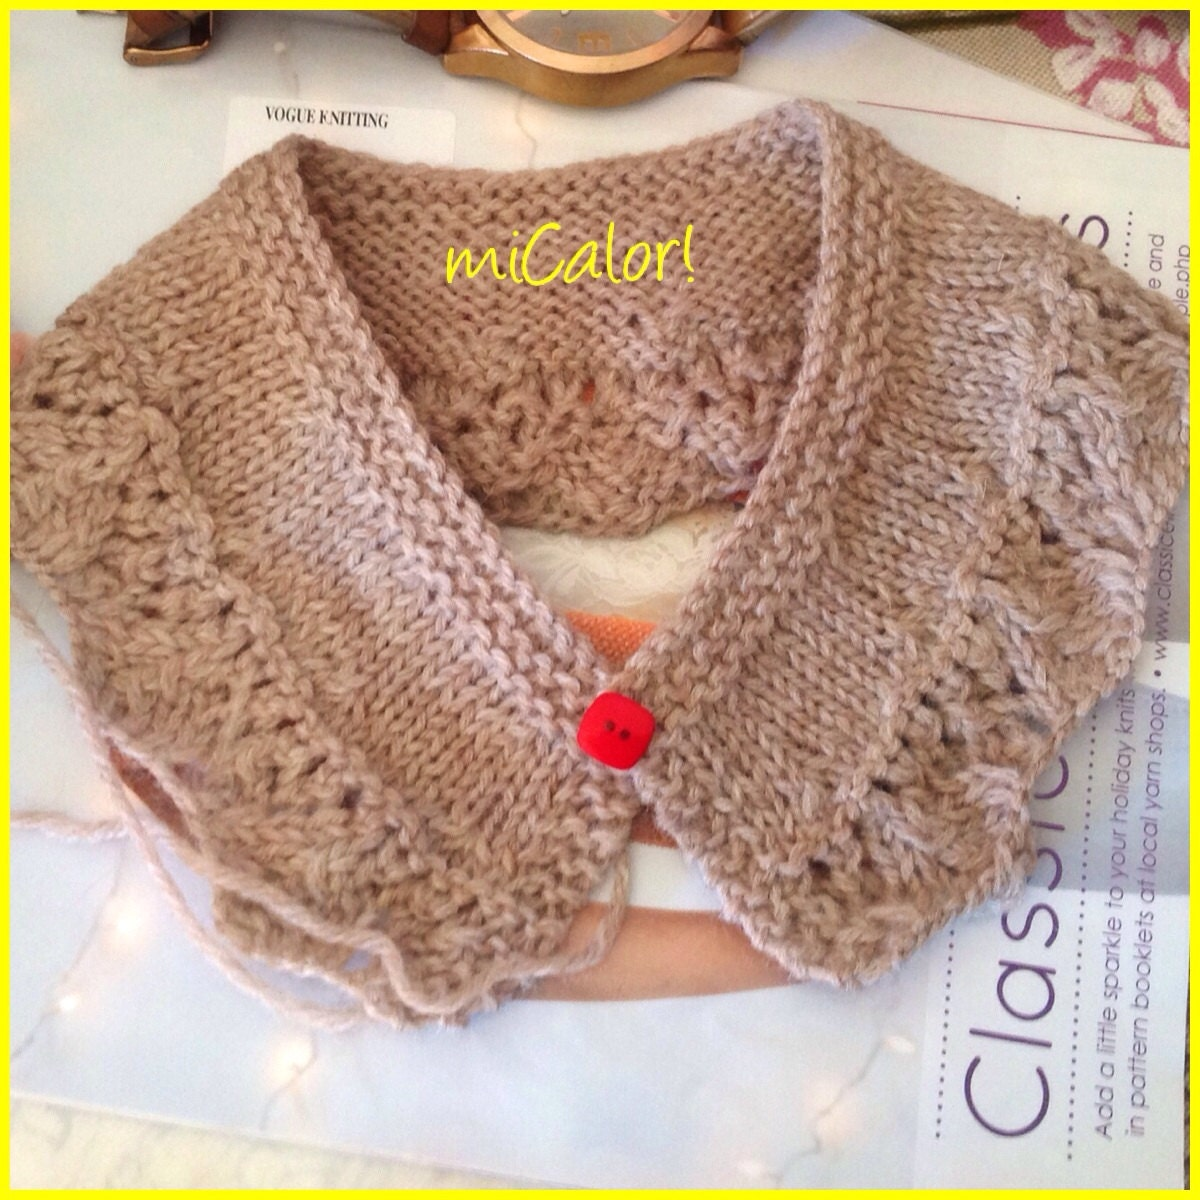 Knitting Pattern Lace Collar : Knit Accessories Lace pattern Collar by miCalorKnits on Etsy